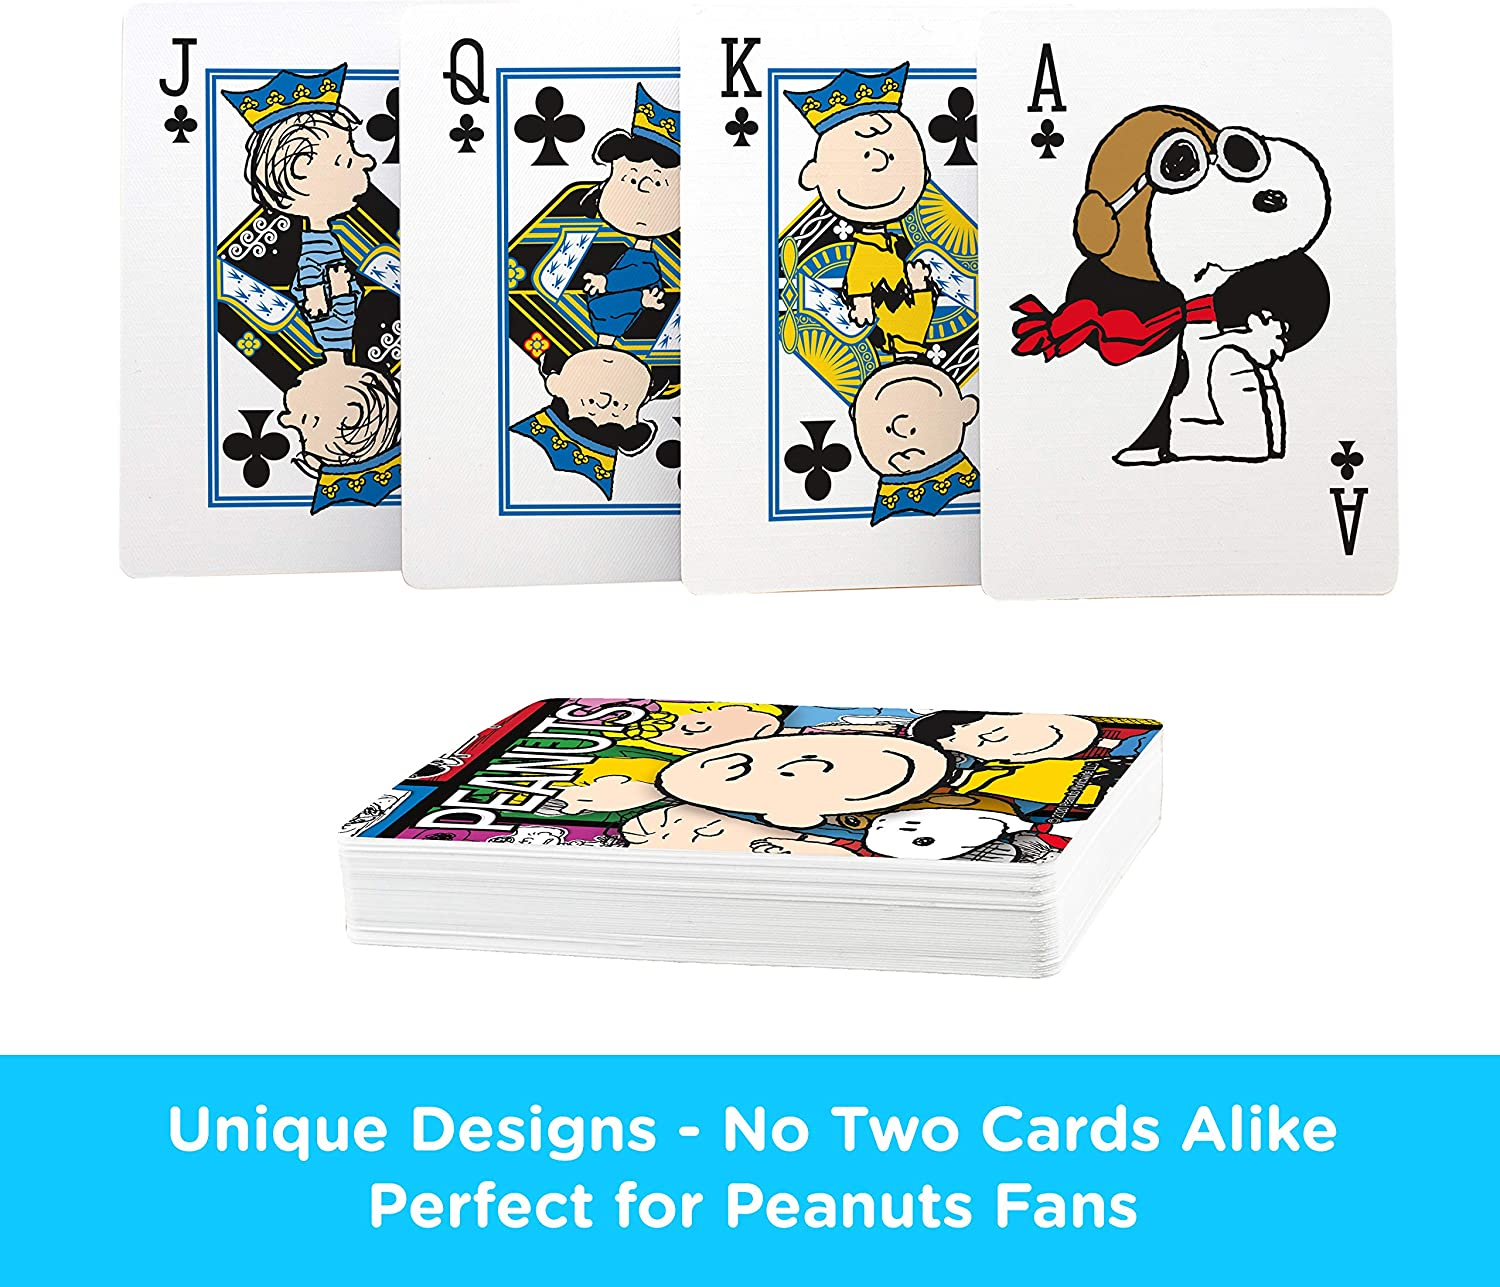 AQUARIUS Peanuts Playing Cards - Peanuts Cast Deck of Cards for Your Favorite Card Games - Officially Licensed Peanuts Merchandise & Collectibles - Poker Size with Linen Finish : Toys & Games